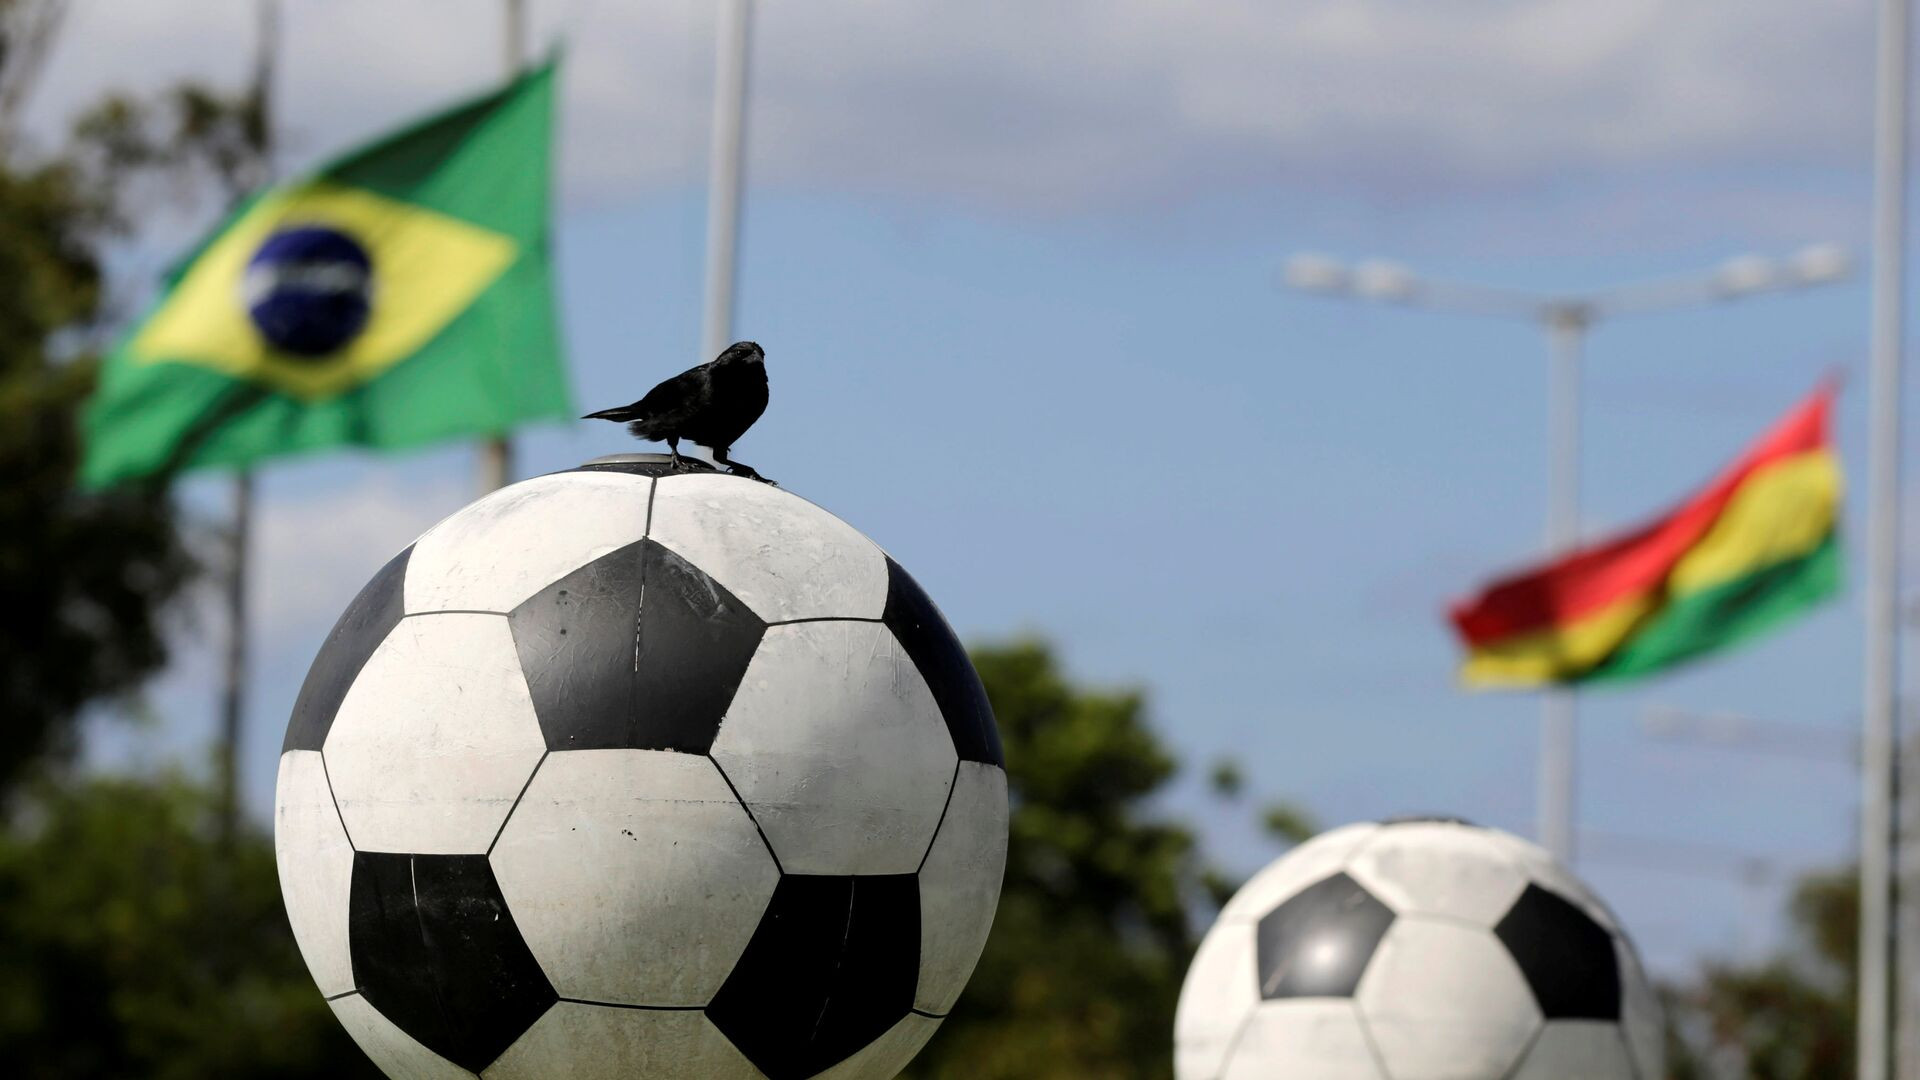 A bird sits on a ball in front of flags of Brazil and member countries of the South American Soccer Confederation (CONMEBOL) at half staff, paying tribute to members of Chapecoense soccer team in a plane crash in Colombia, in front of the headquarters in Luque, Paraguay - Sputnik Mundo, 1920, 12.06.2021